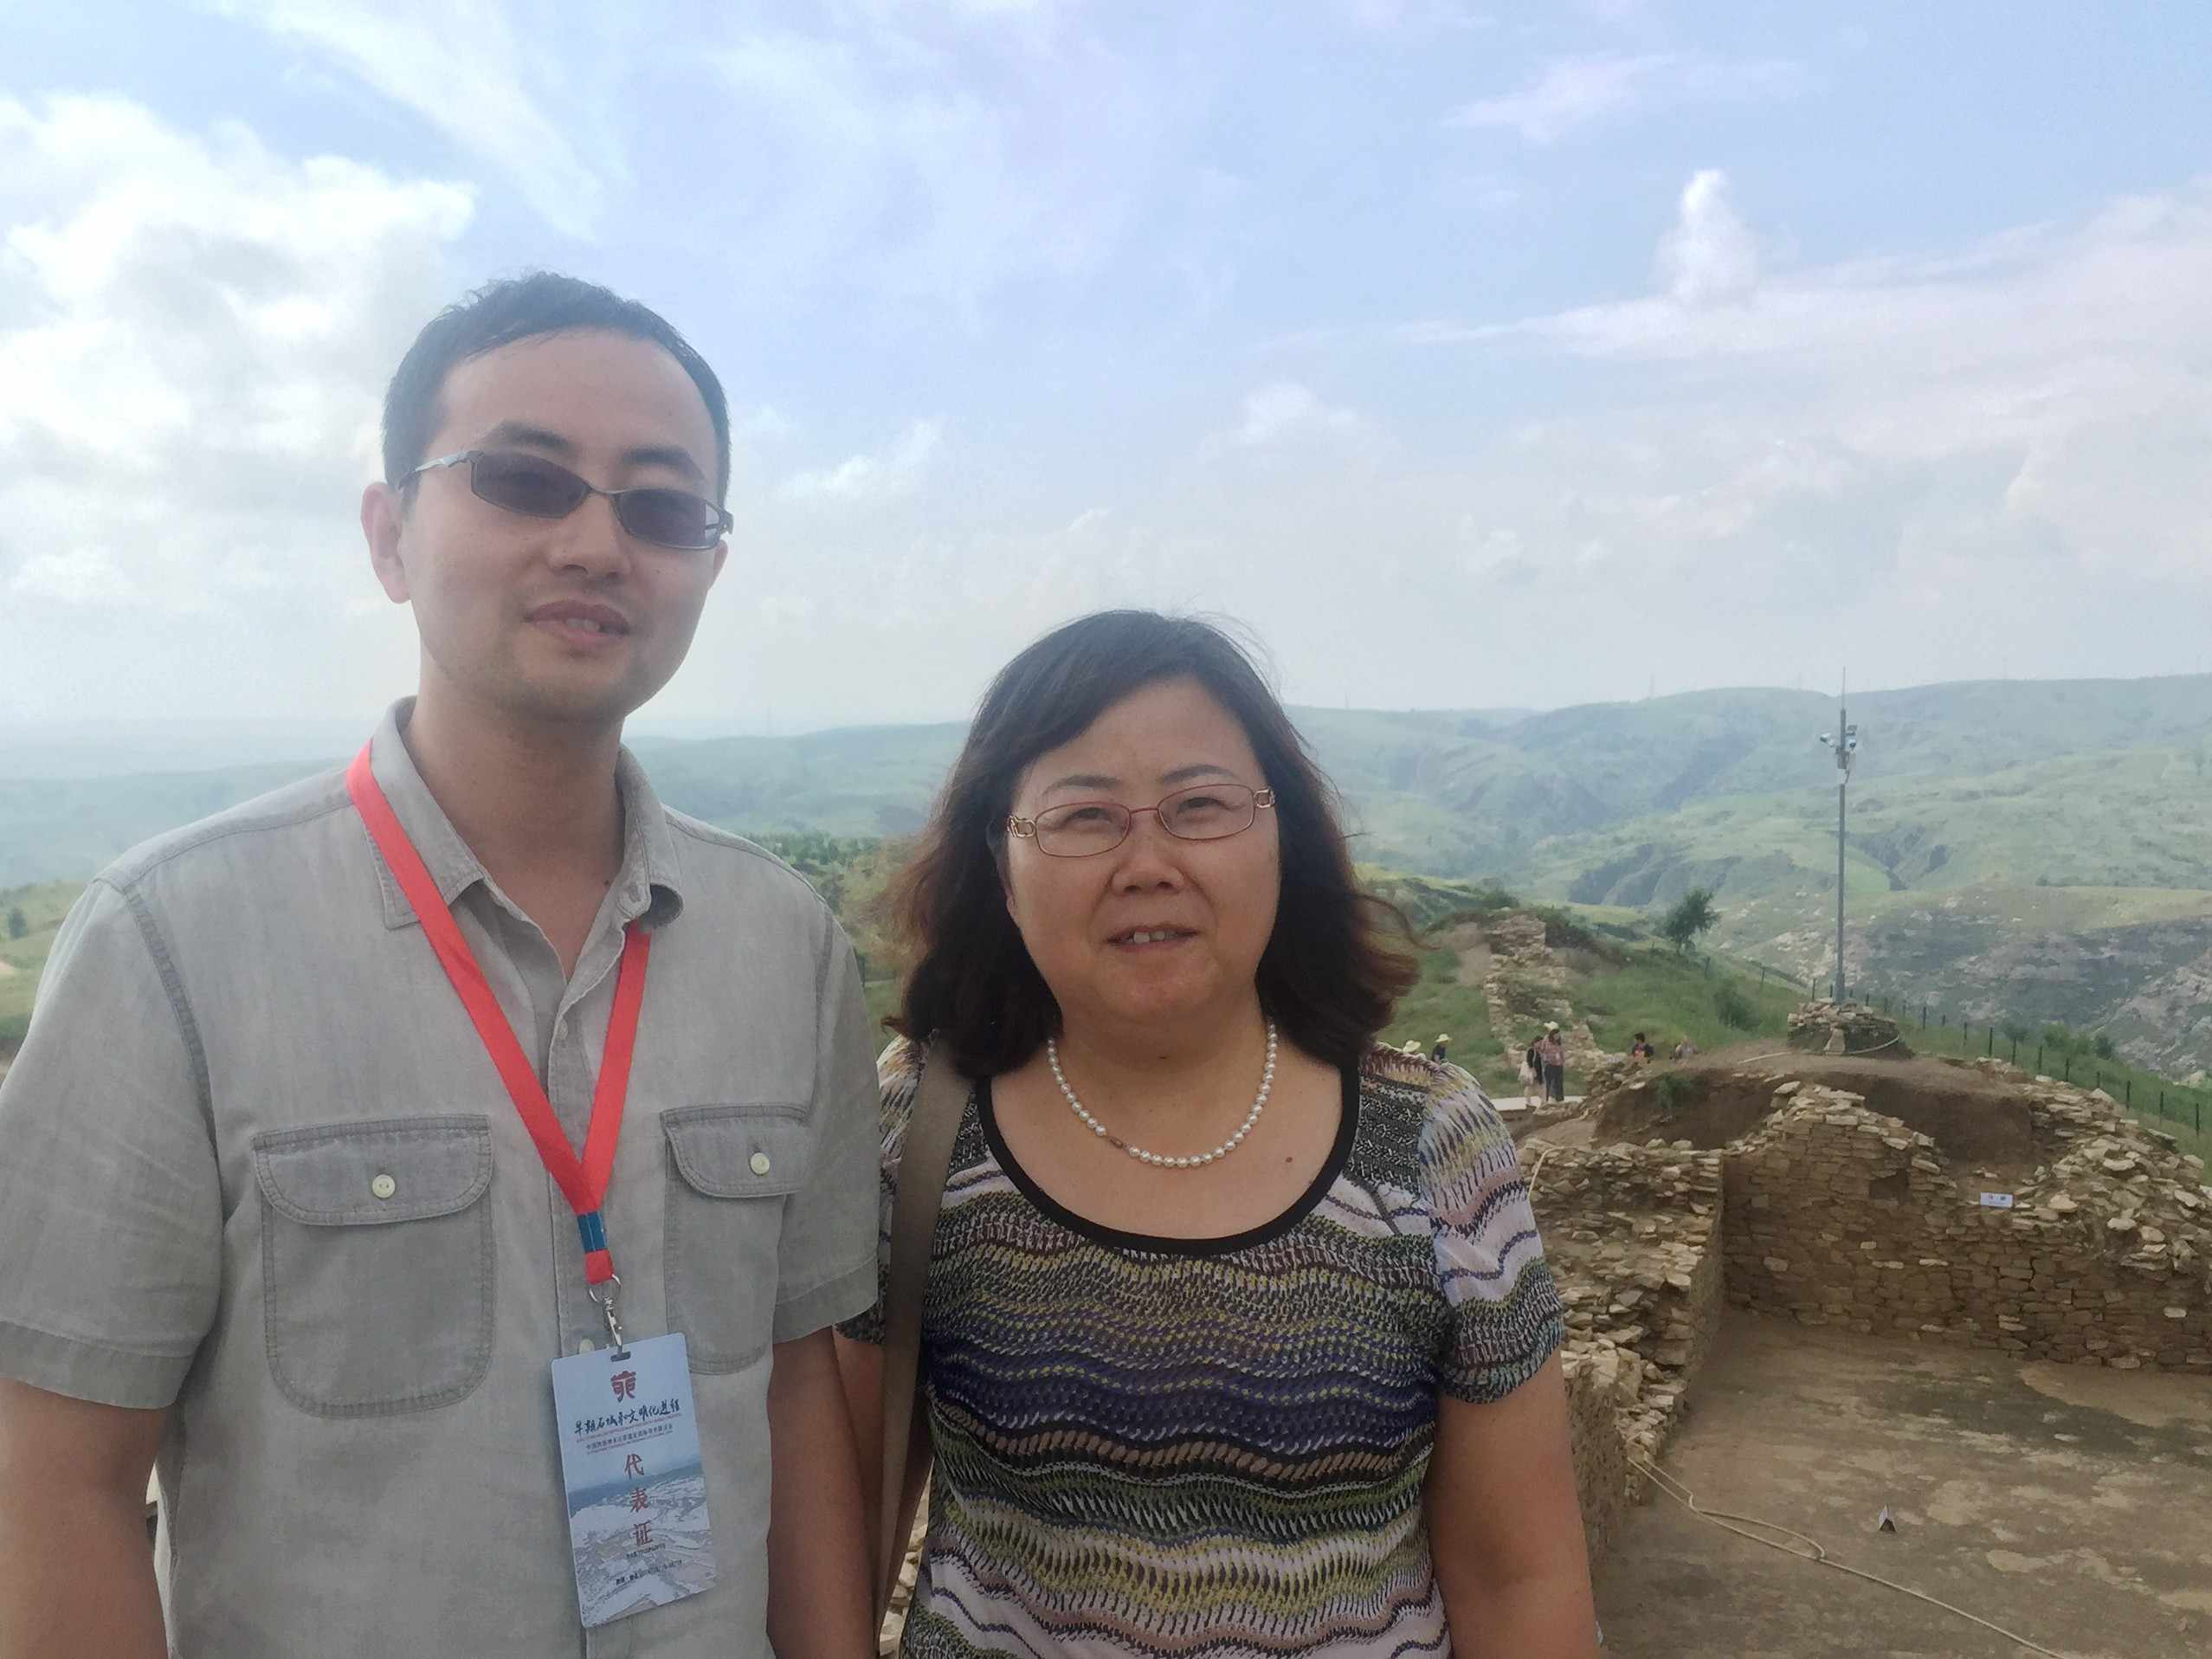 Prof. Songmei Hu and me, at Shimao city